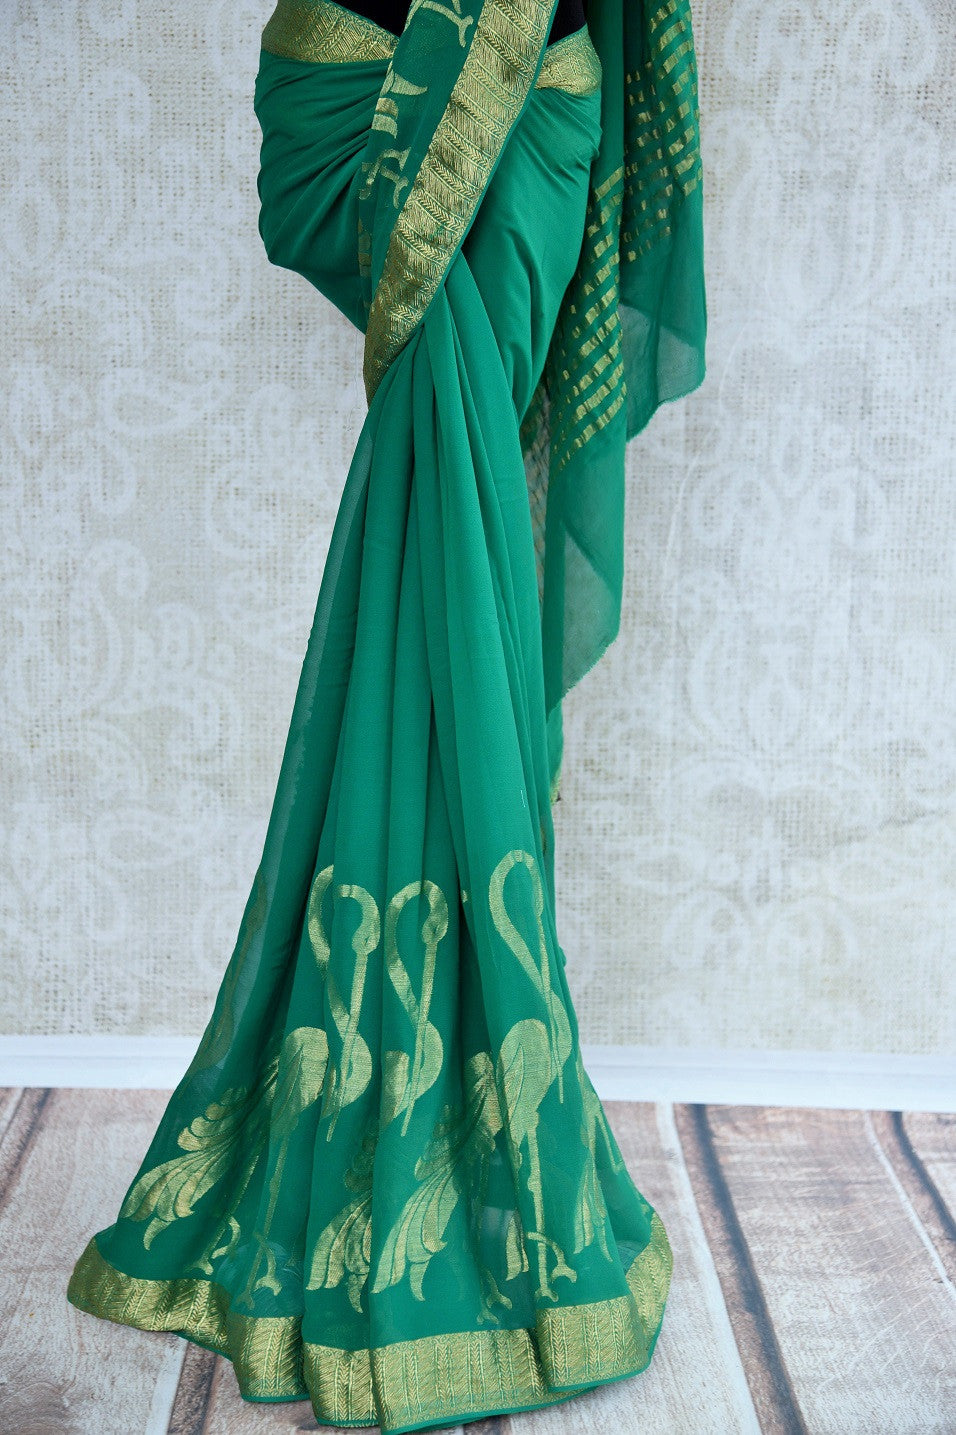 Shop green and gold sari in georgette zari with gold border online at  Pure-Elegance in USA.This Indian silk sari can be a party wear, wedding, or bridal sari.